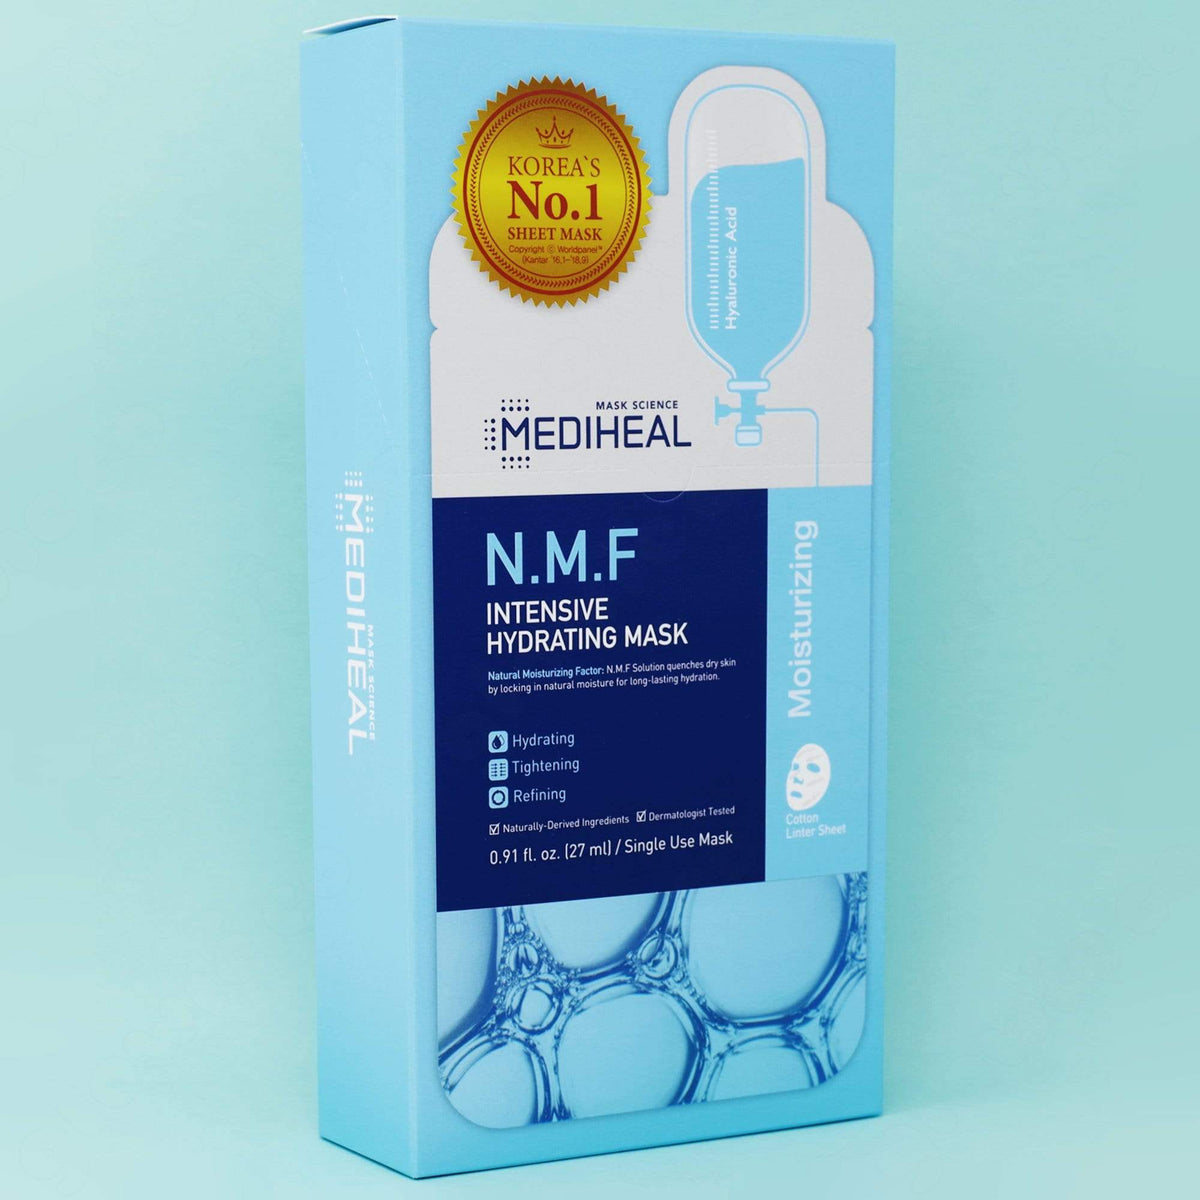 MEDIHEAL N.M.F Intensive Hydrating Mask